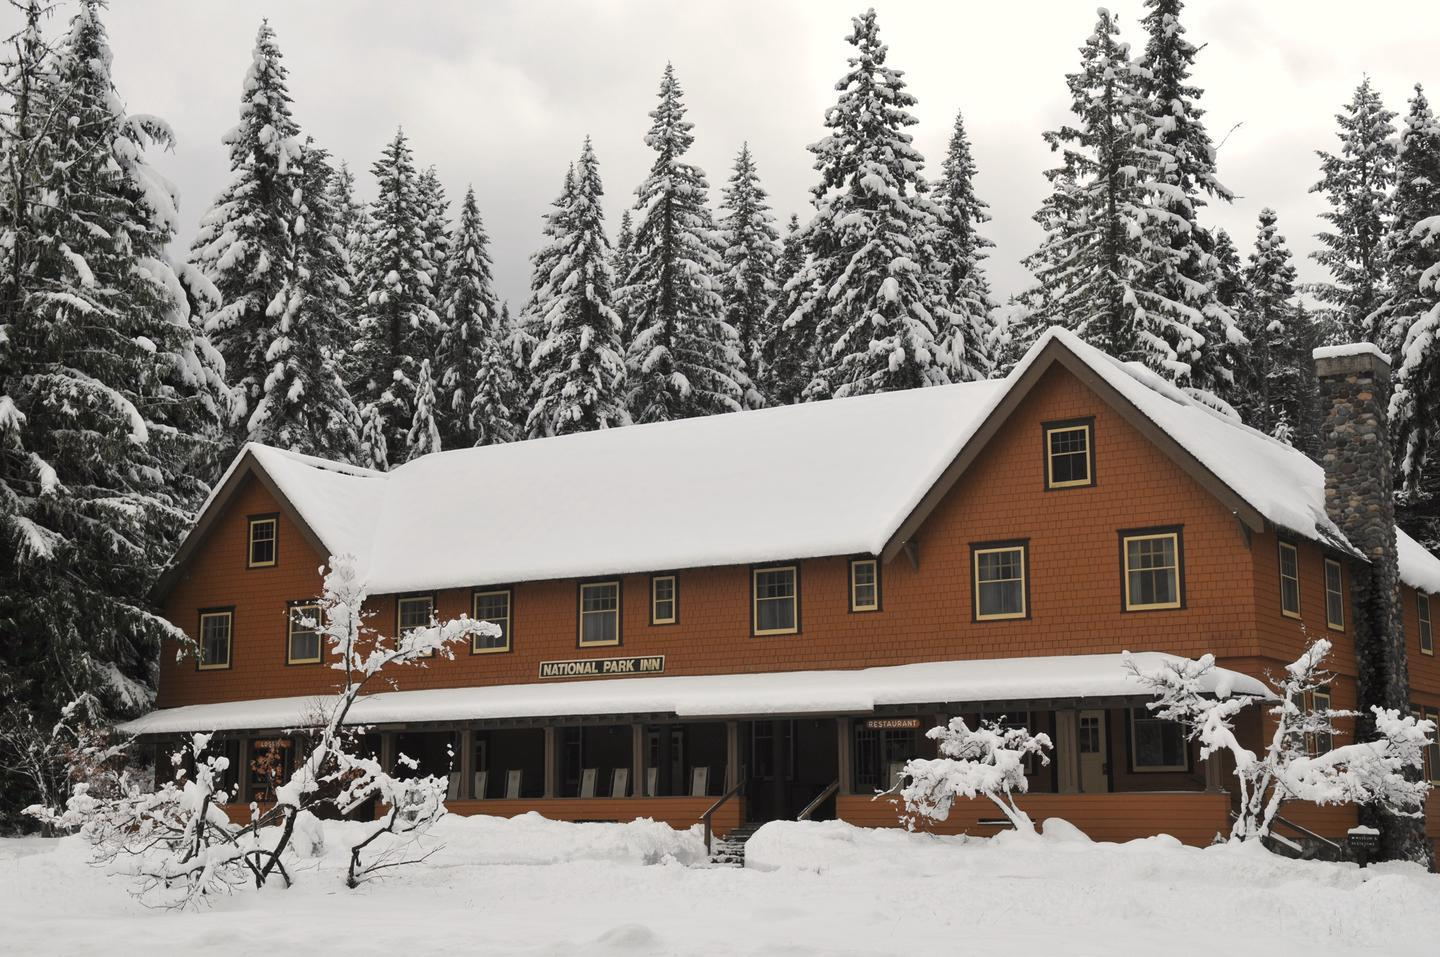 National Park Inn in WinterFor thousands of years, people have traveled up to, over, and around Mount Rainier. Today the park strives to preserve this history while providing a chance for new generations to find their own adventures.